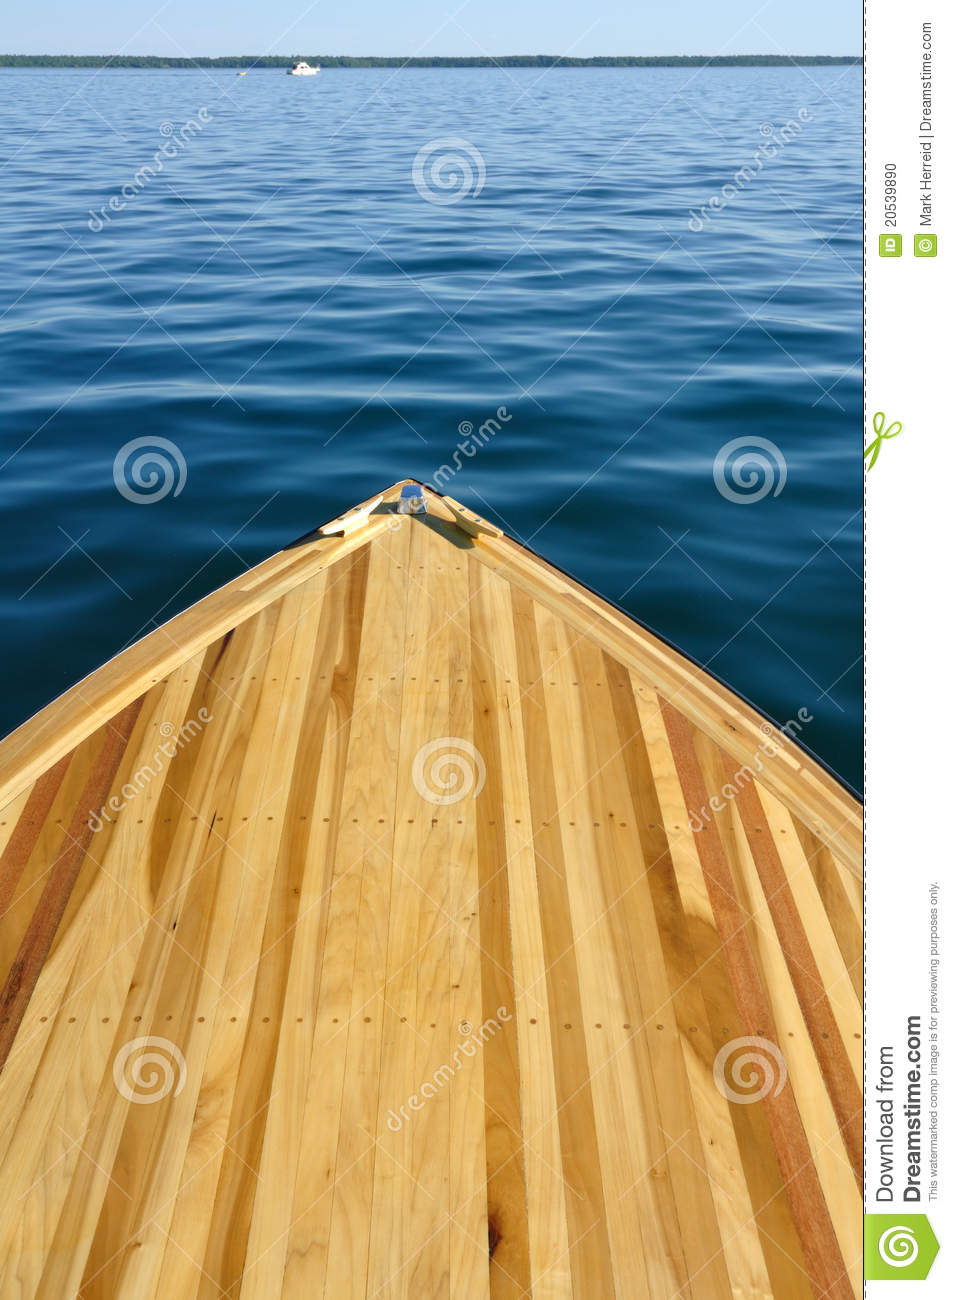 Wood Strip Bow Deck Of Wooden Boat Stock Photo - Image of ...